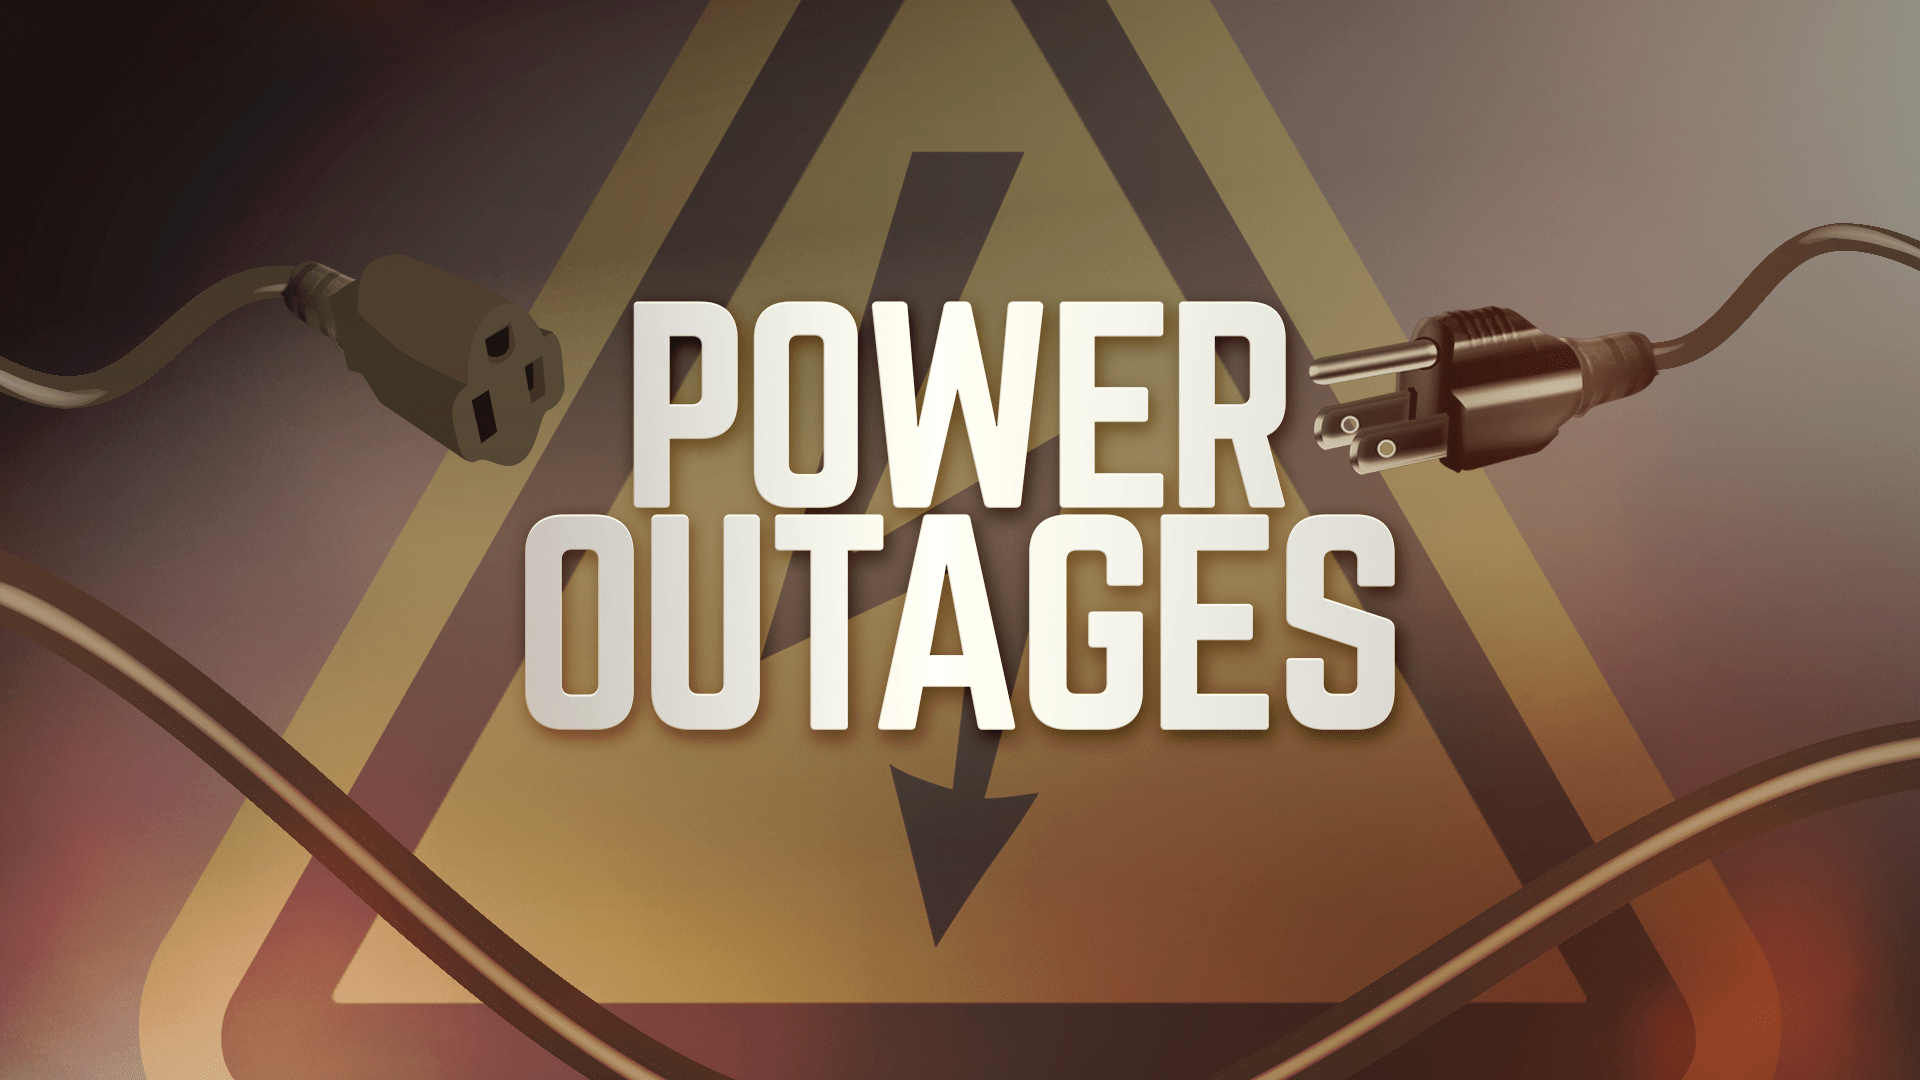 Power outages_AP_1561039395424.png